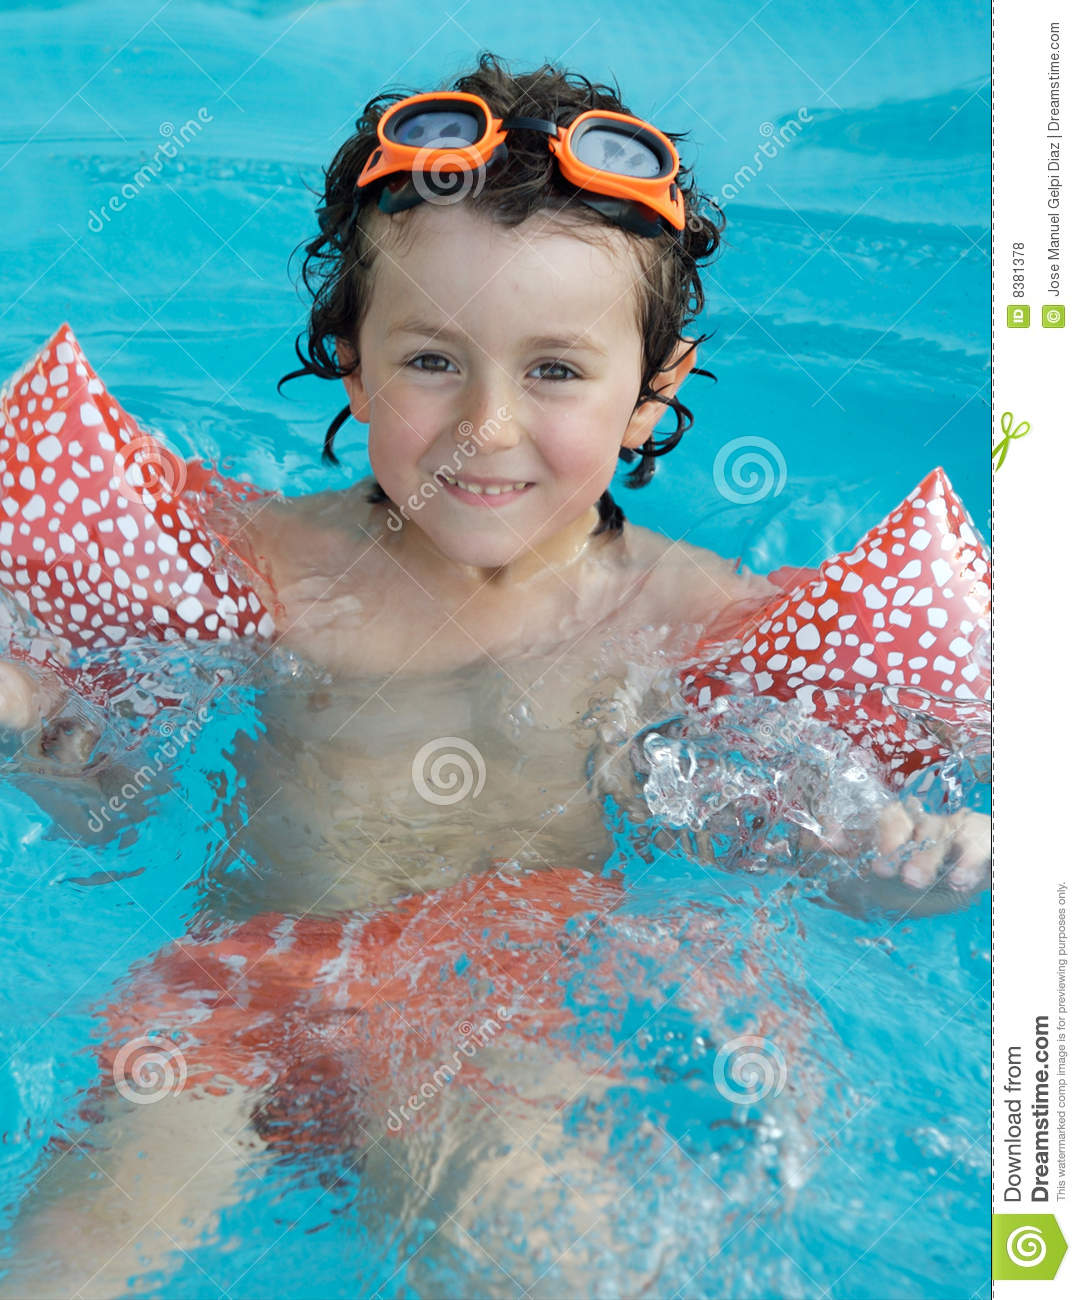 Shop the largest selection of Little Boys' Swim Trunks at the web's most popular swim shop. Free Shipping on $49+. Low Price Guarantee. + Brands. 24/7 Customer Service.